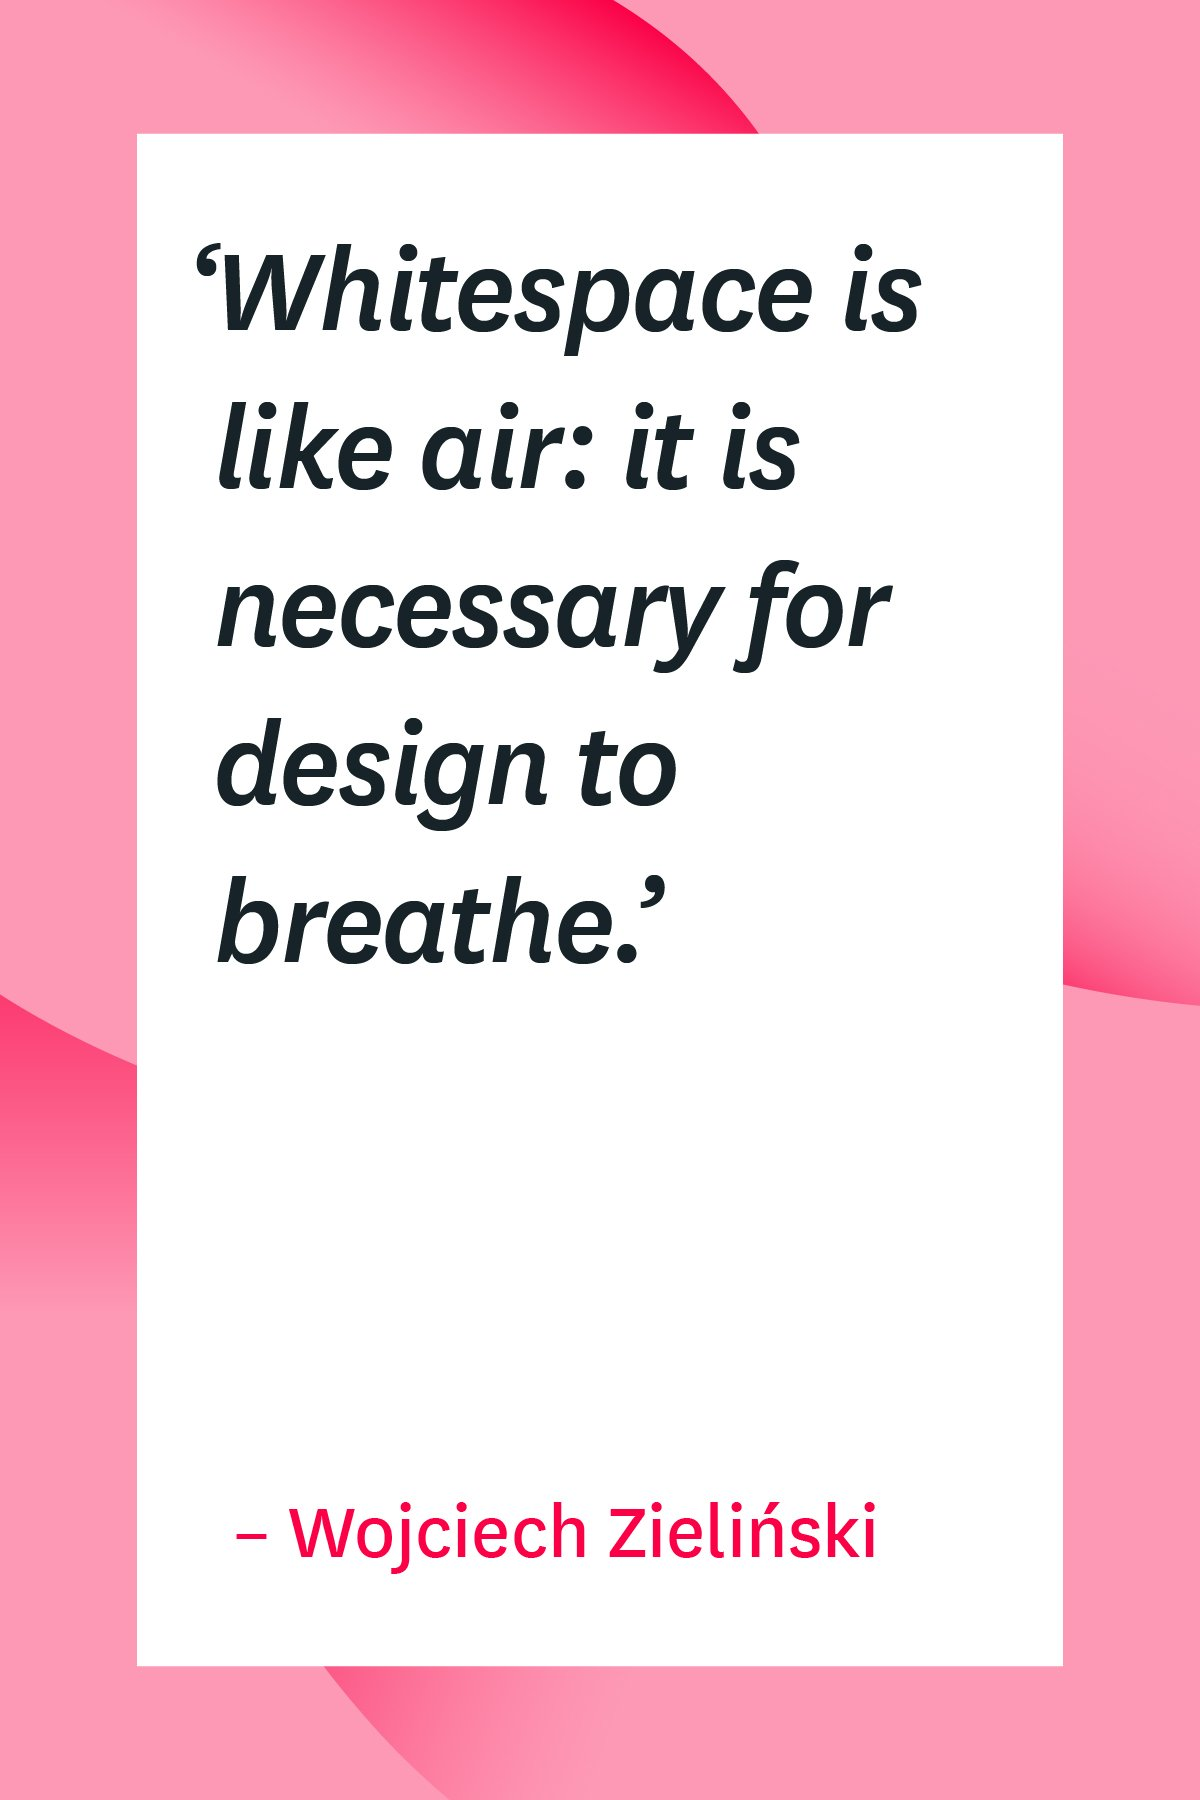 Get inspired with 101 design quotes that will spark your creativity. #design